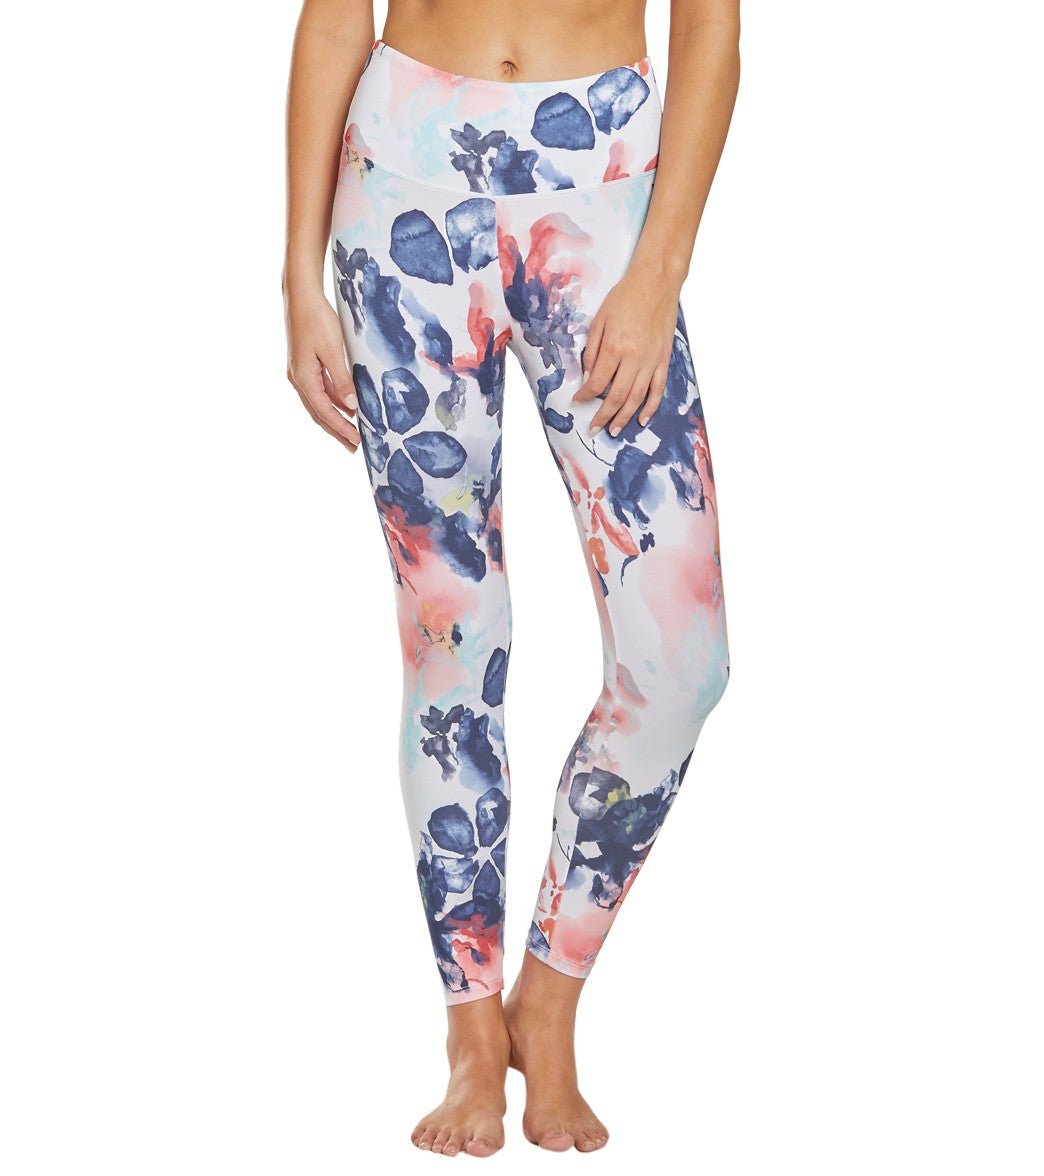 Balance Collection Printed High Waisted Yoga Capri Pants - Buff Yellow Watercolor Floral Cotton Moisture Wicking